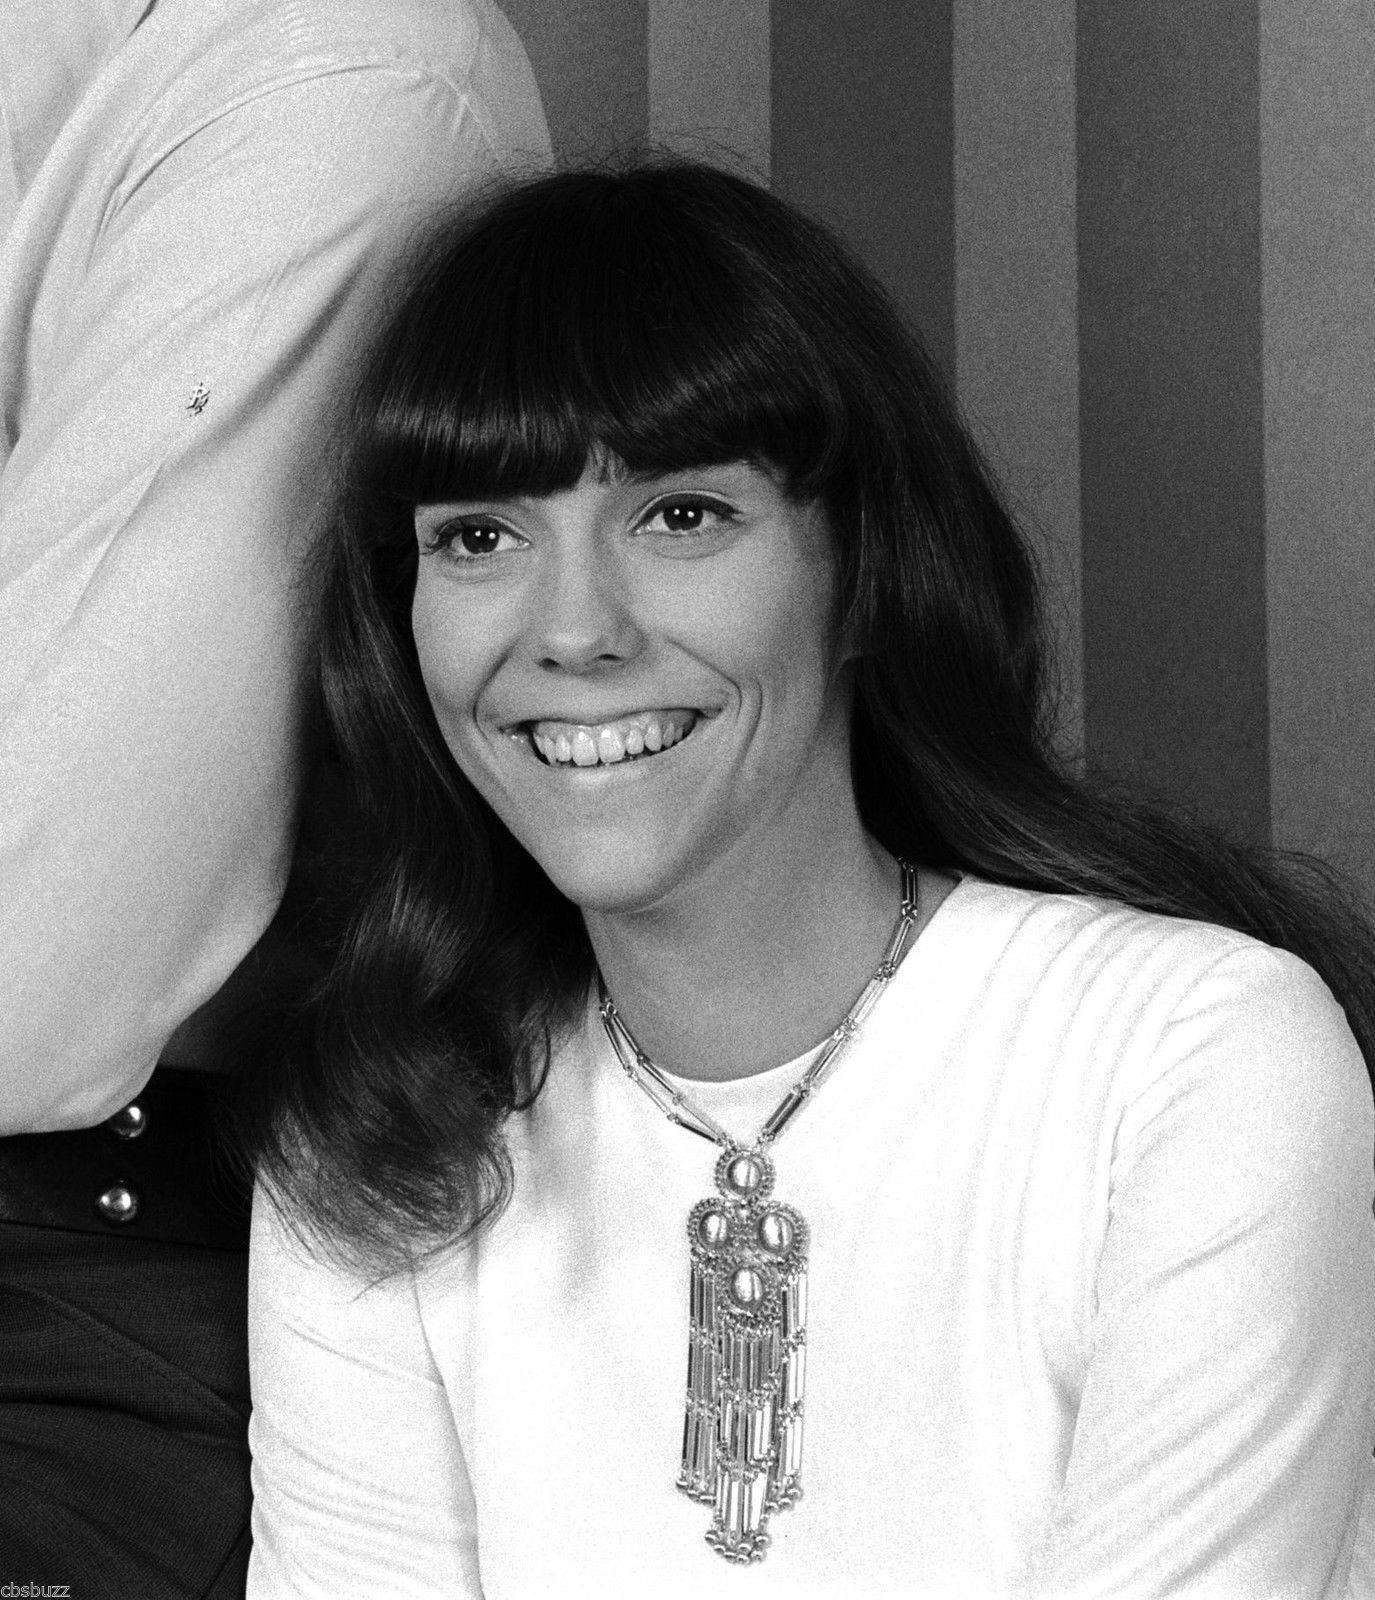 PHOTO OF KAREN CARPENTER   Carpenters   Pinterest   Karen carpenter     PHOTO OF KAREN CARPENTER